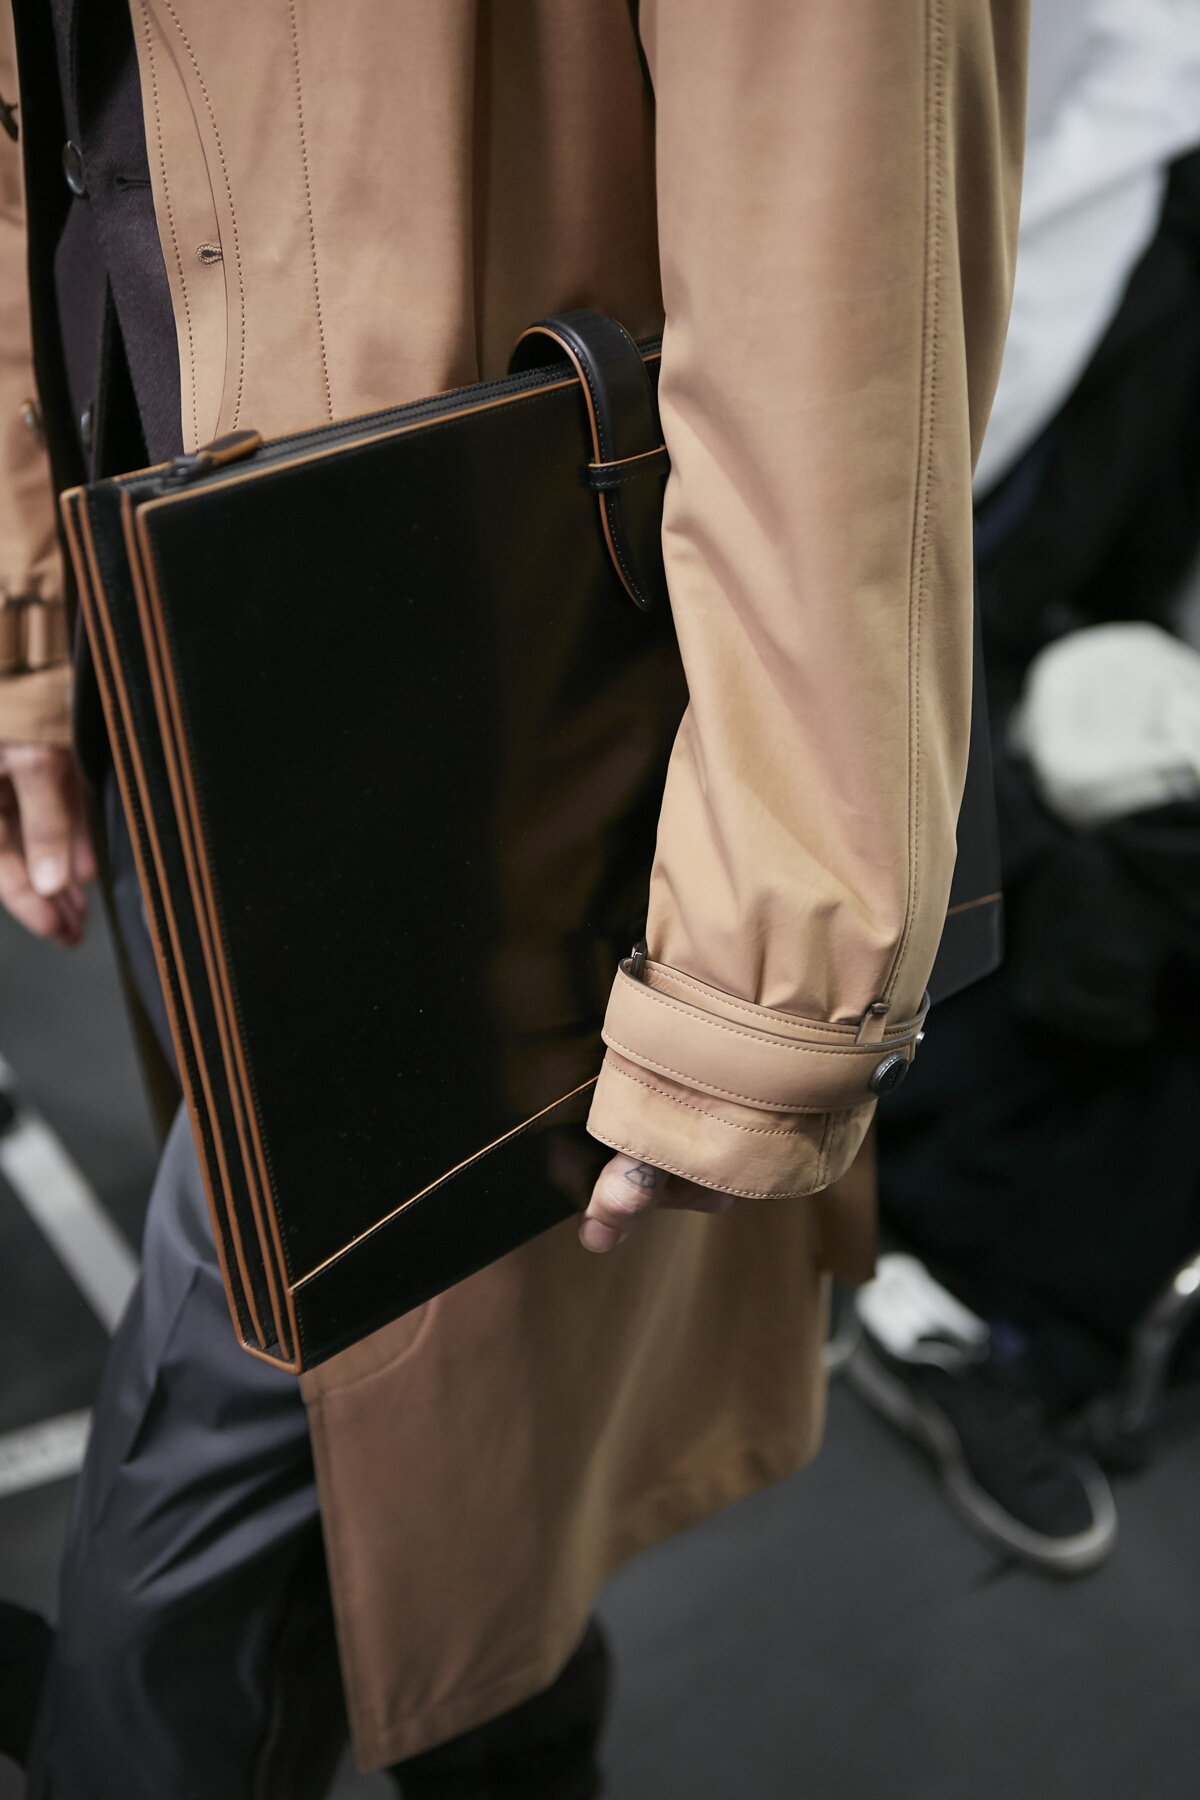 Backstage Ermenegildo Zegna Fashion Bag